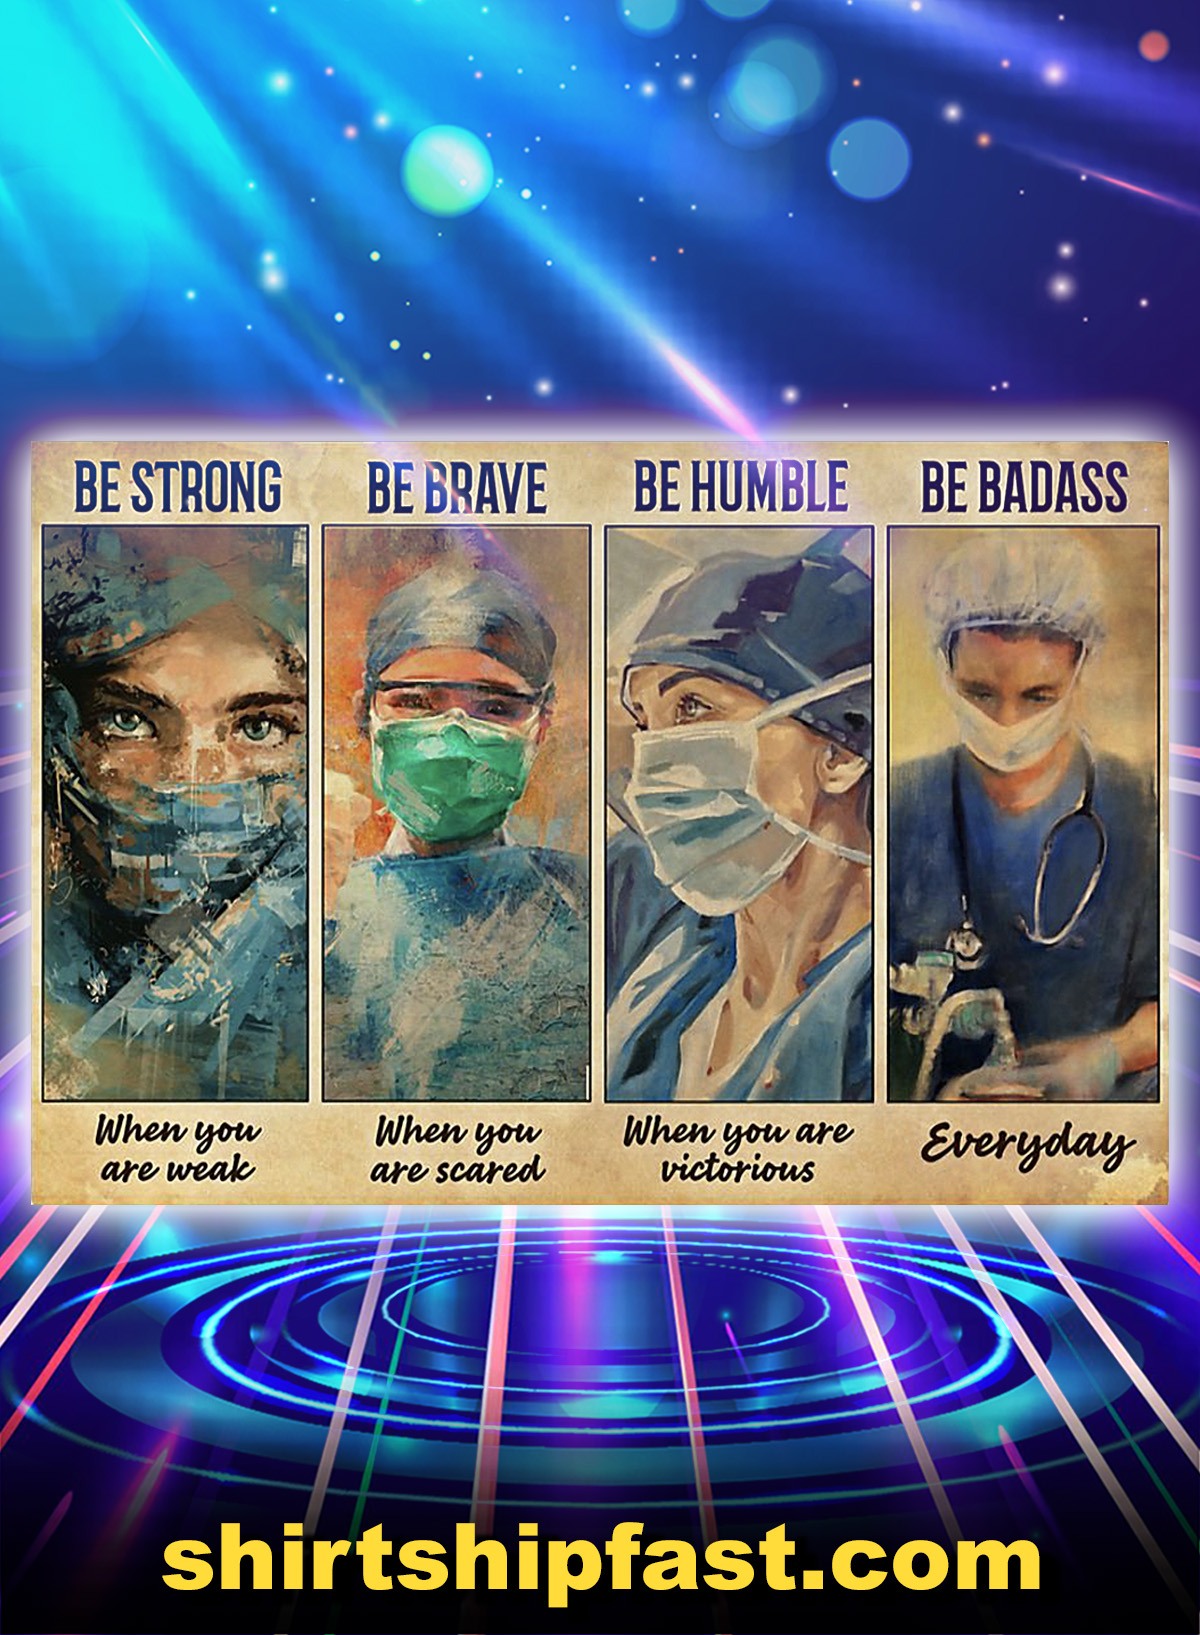 Female physicians be strong be brave be humble be badass poster - A4